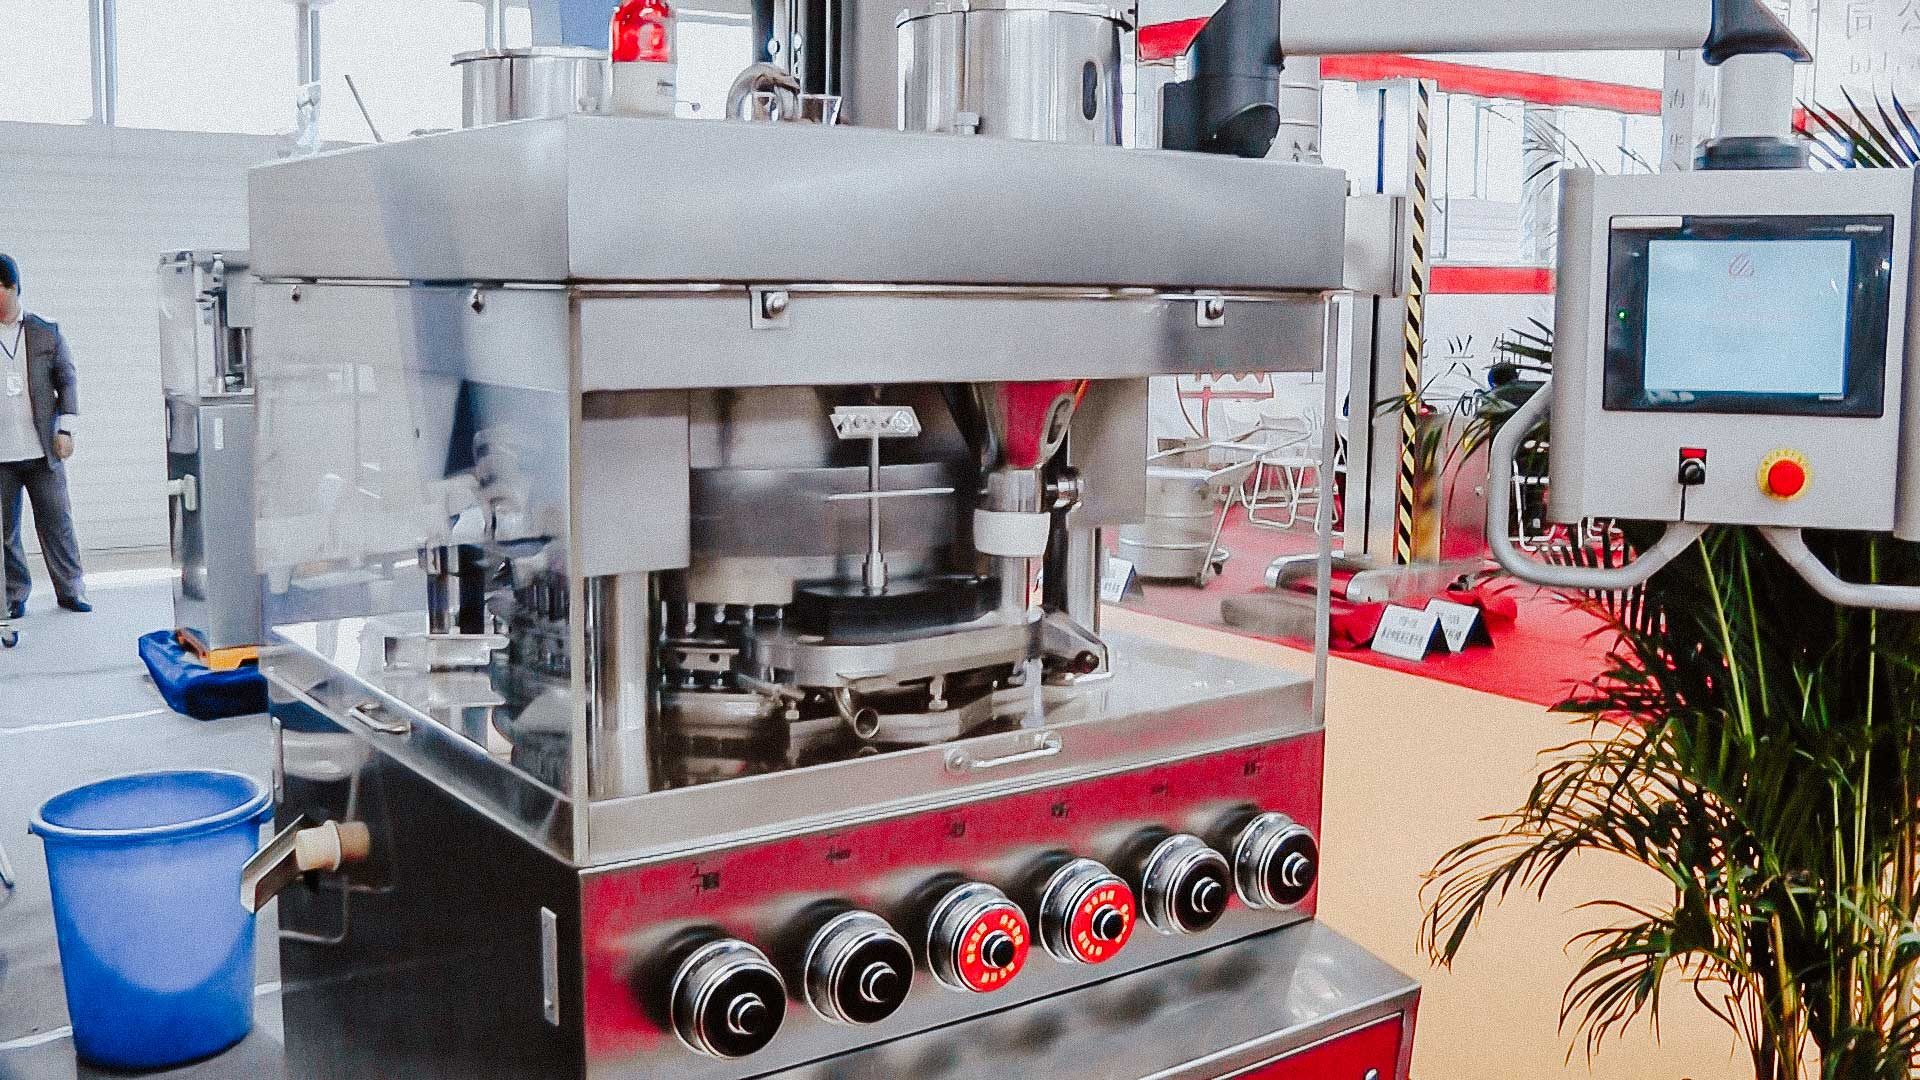 High speed rotary tablet press for pharmaceutical tablet pressing